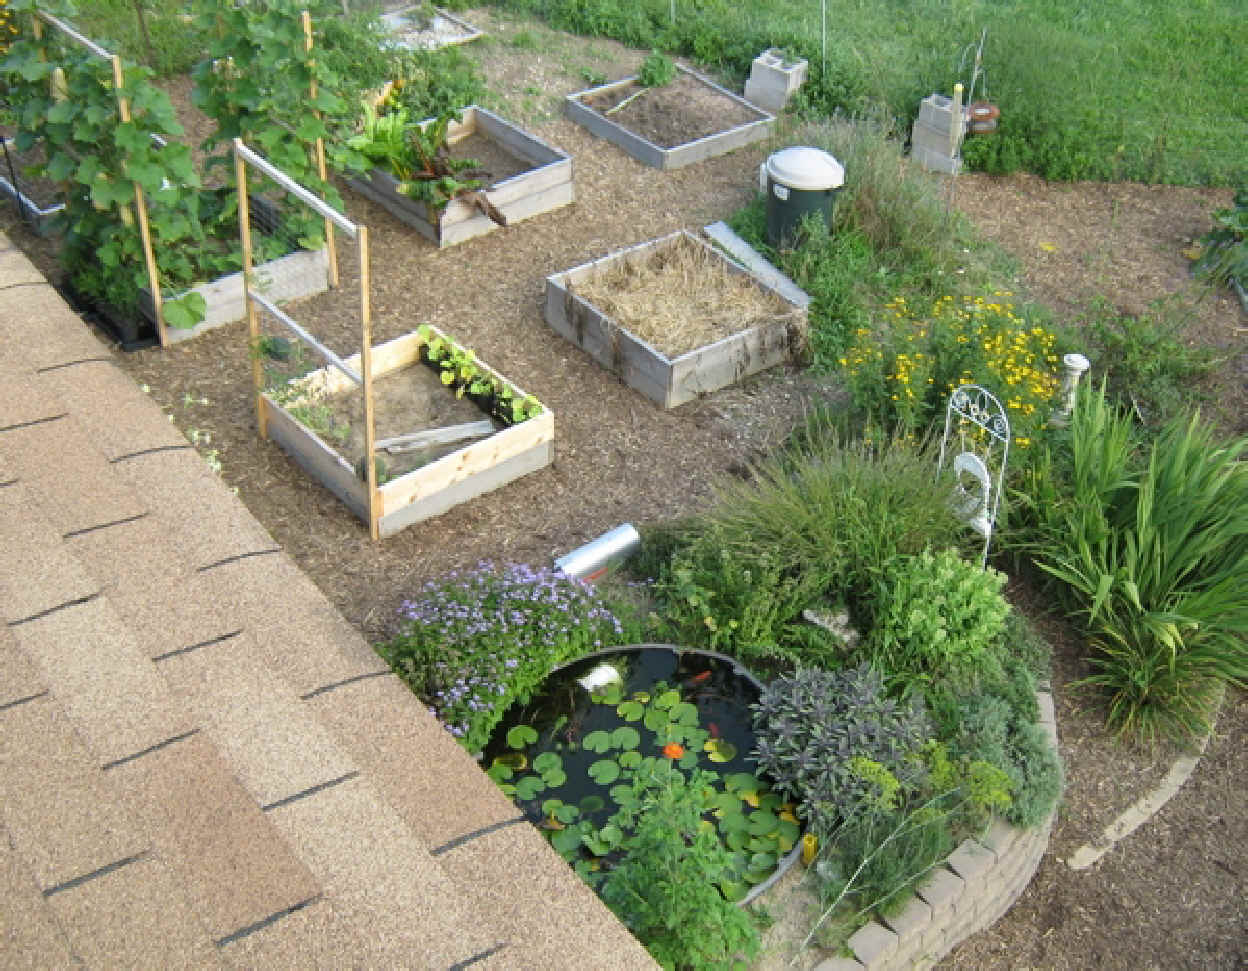 View of square foot garden